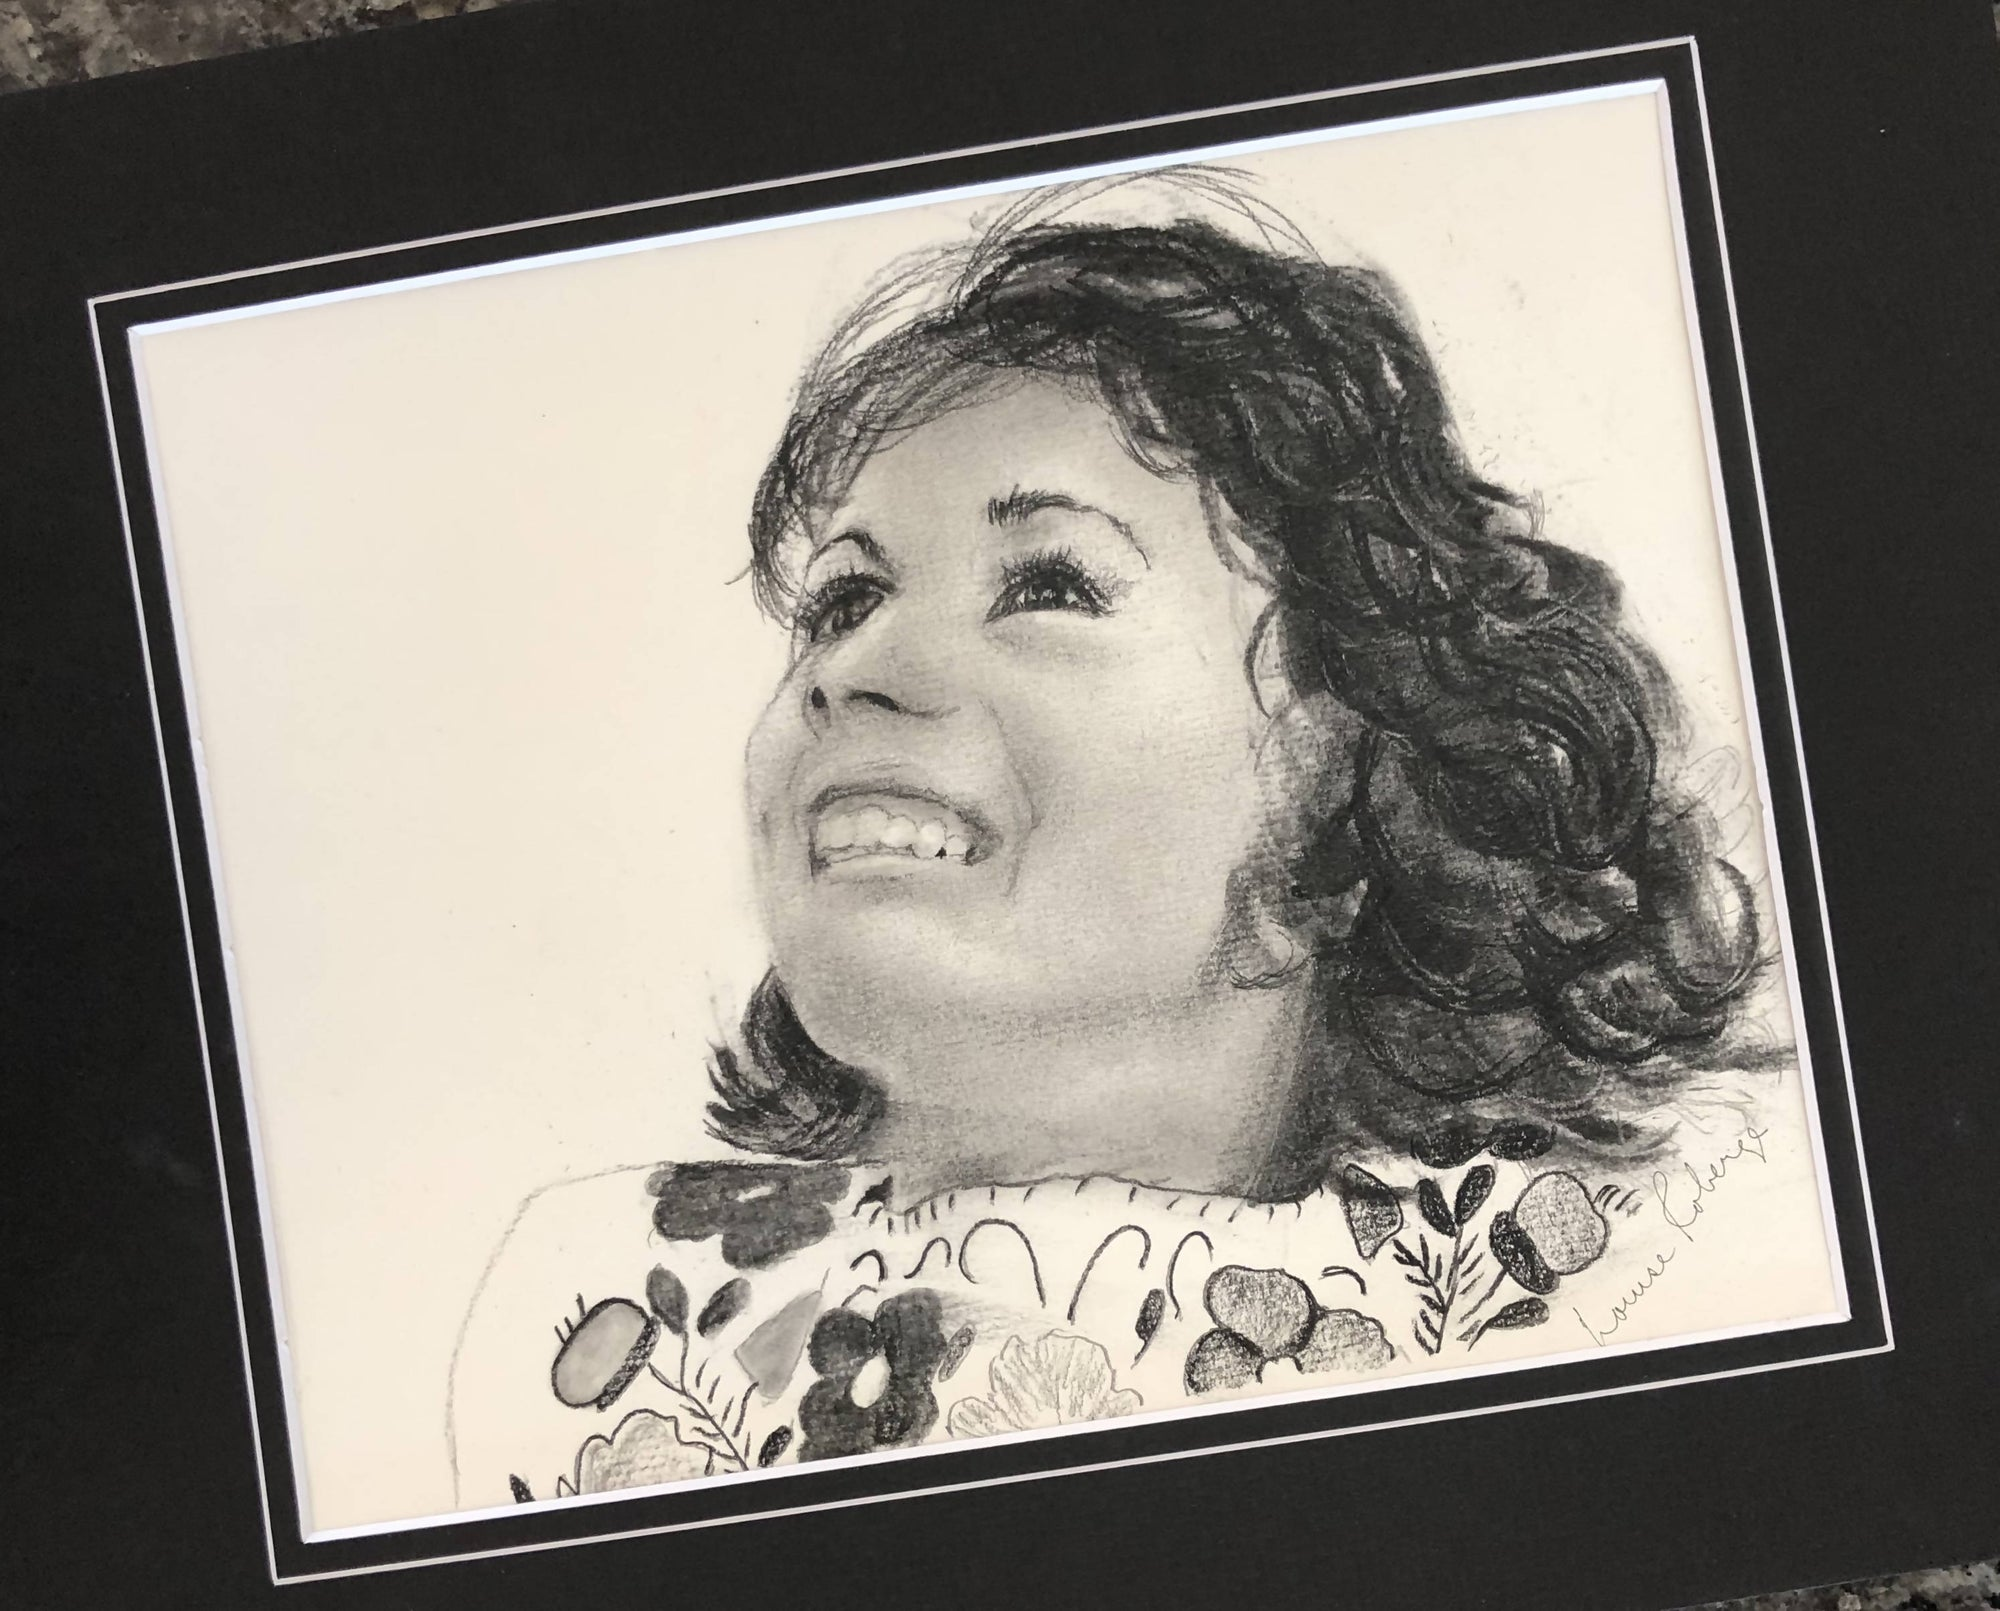 Commissioned portrait in charcoal